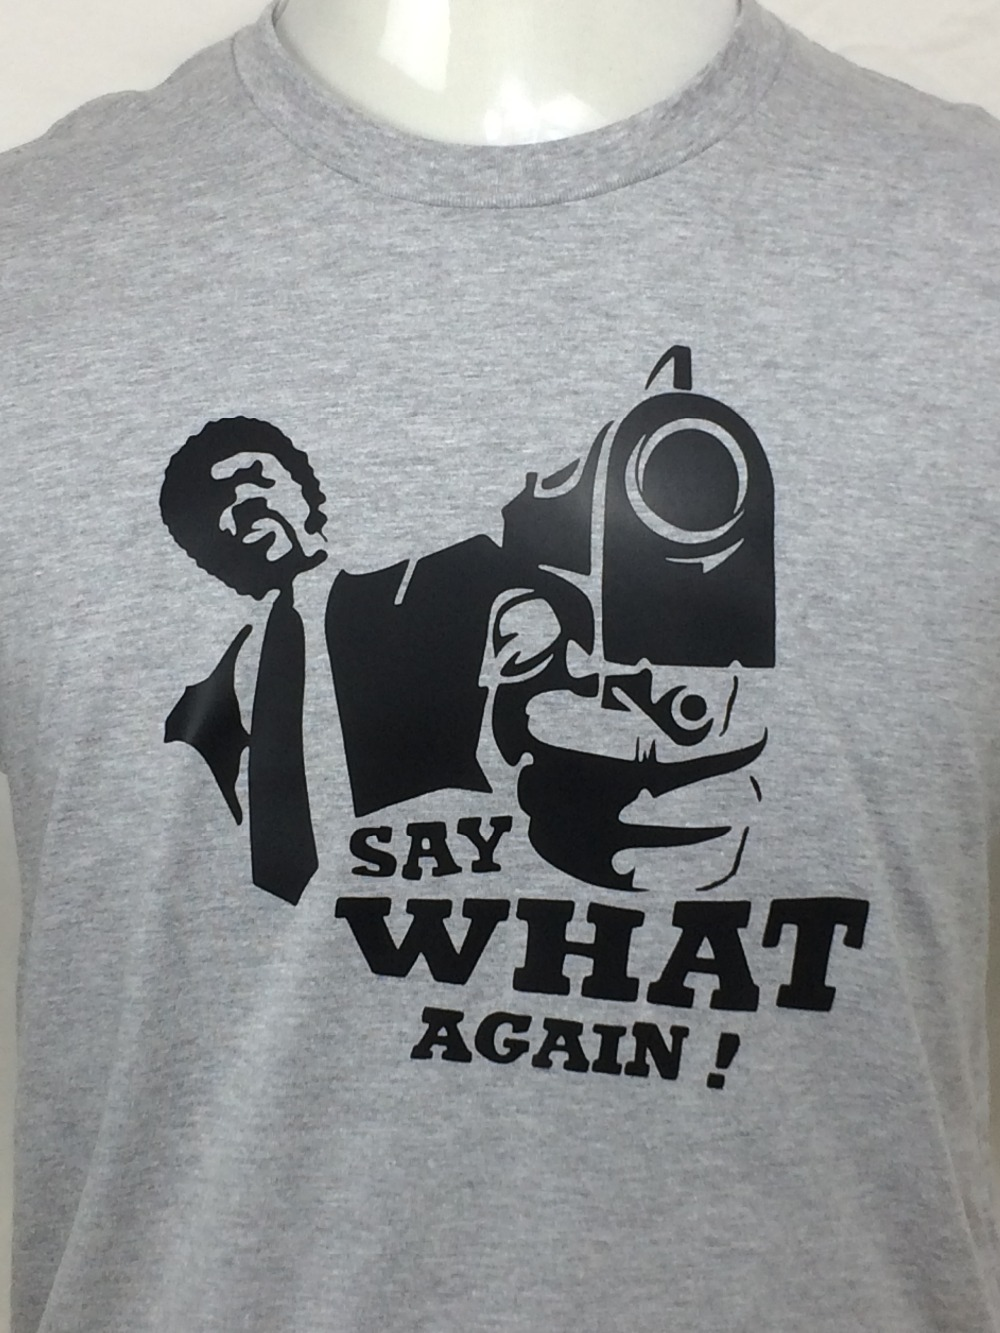 2017 New Arrive Funny PULP FICTION SAY WHAT AGAIN Cotton T Shirt for men